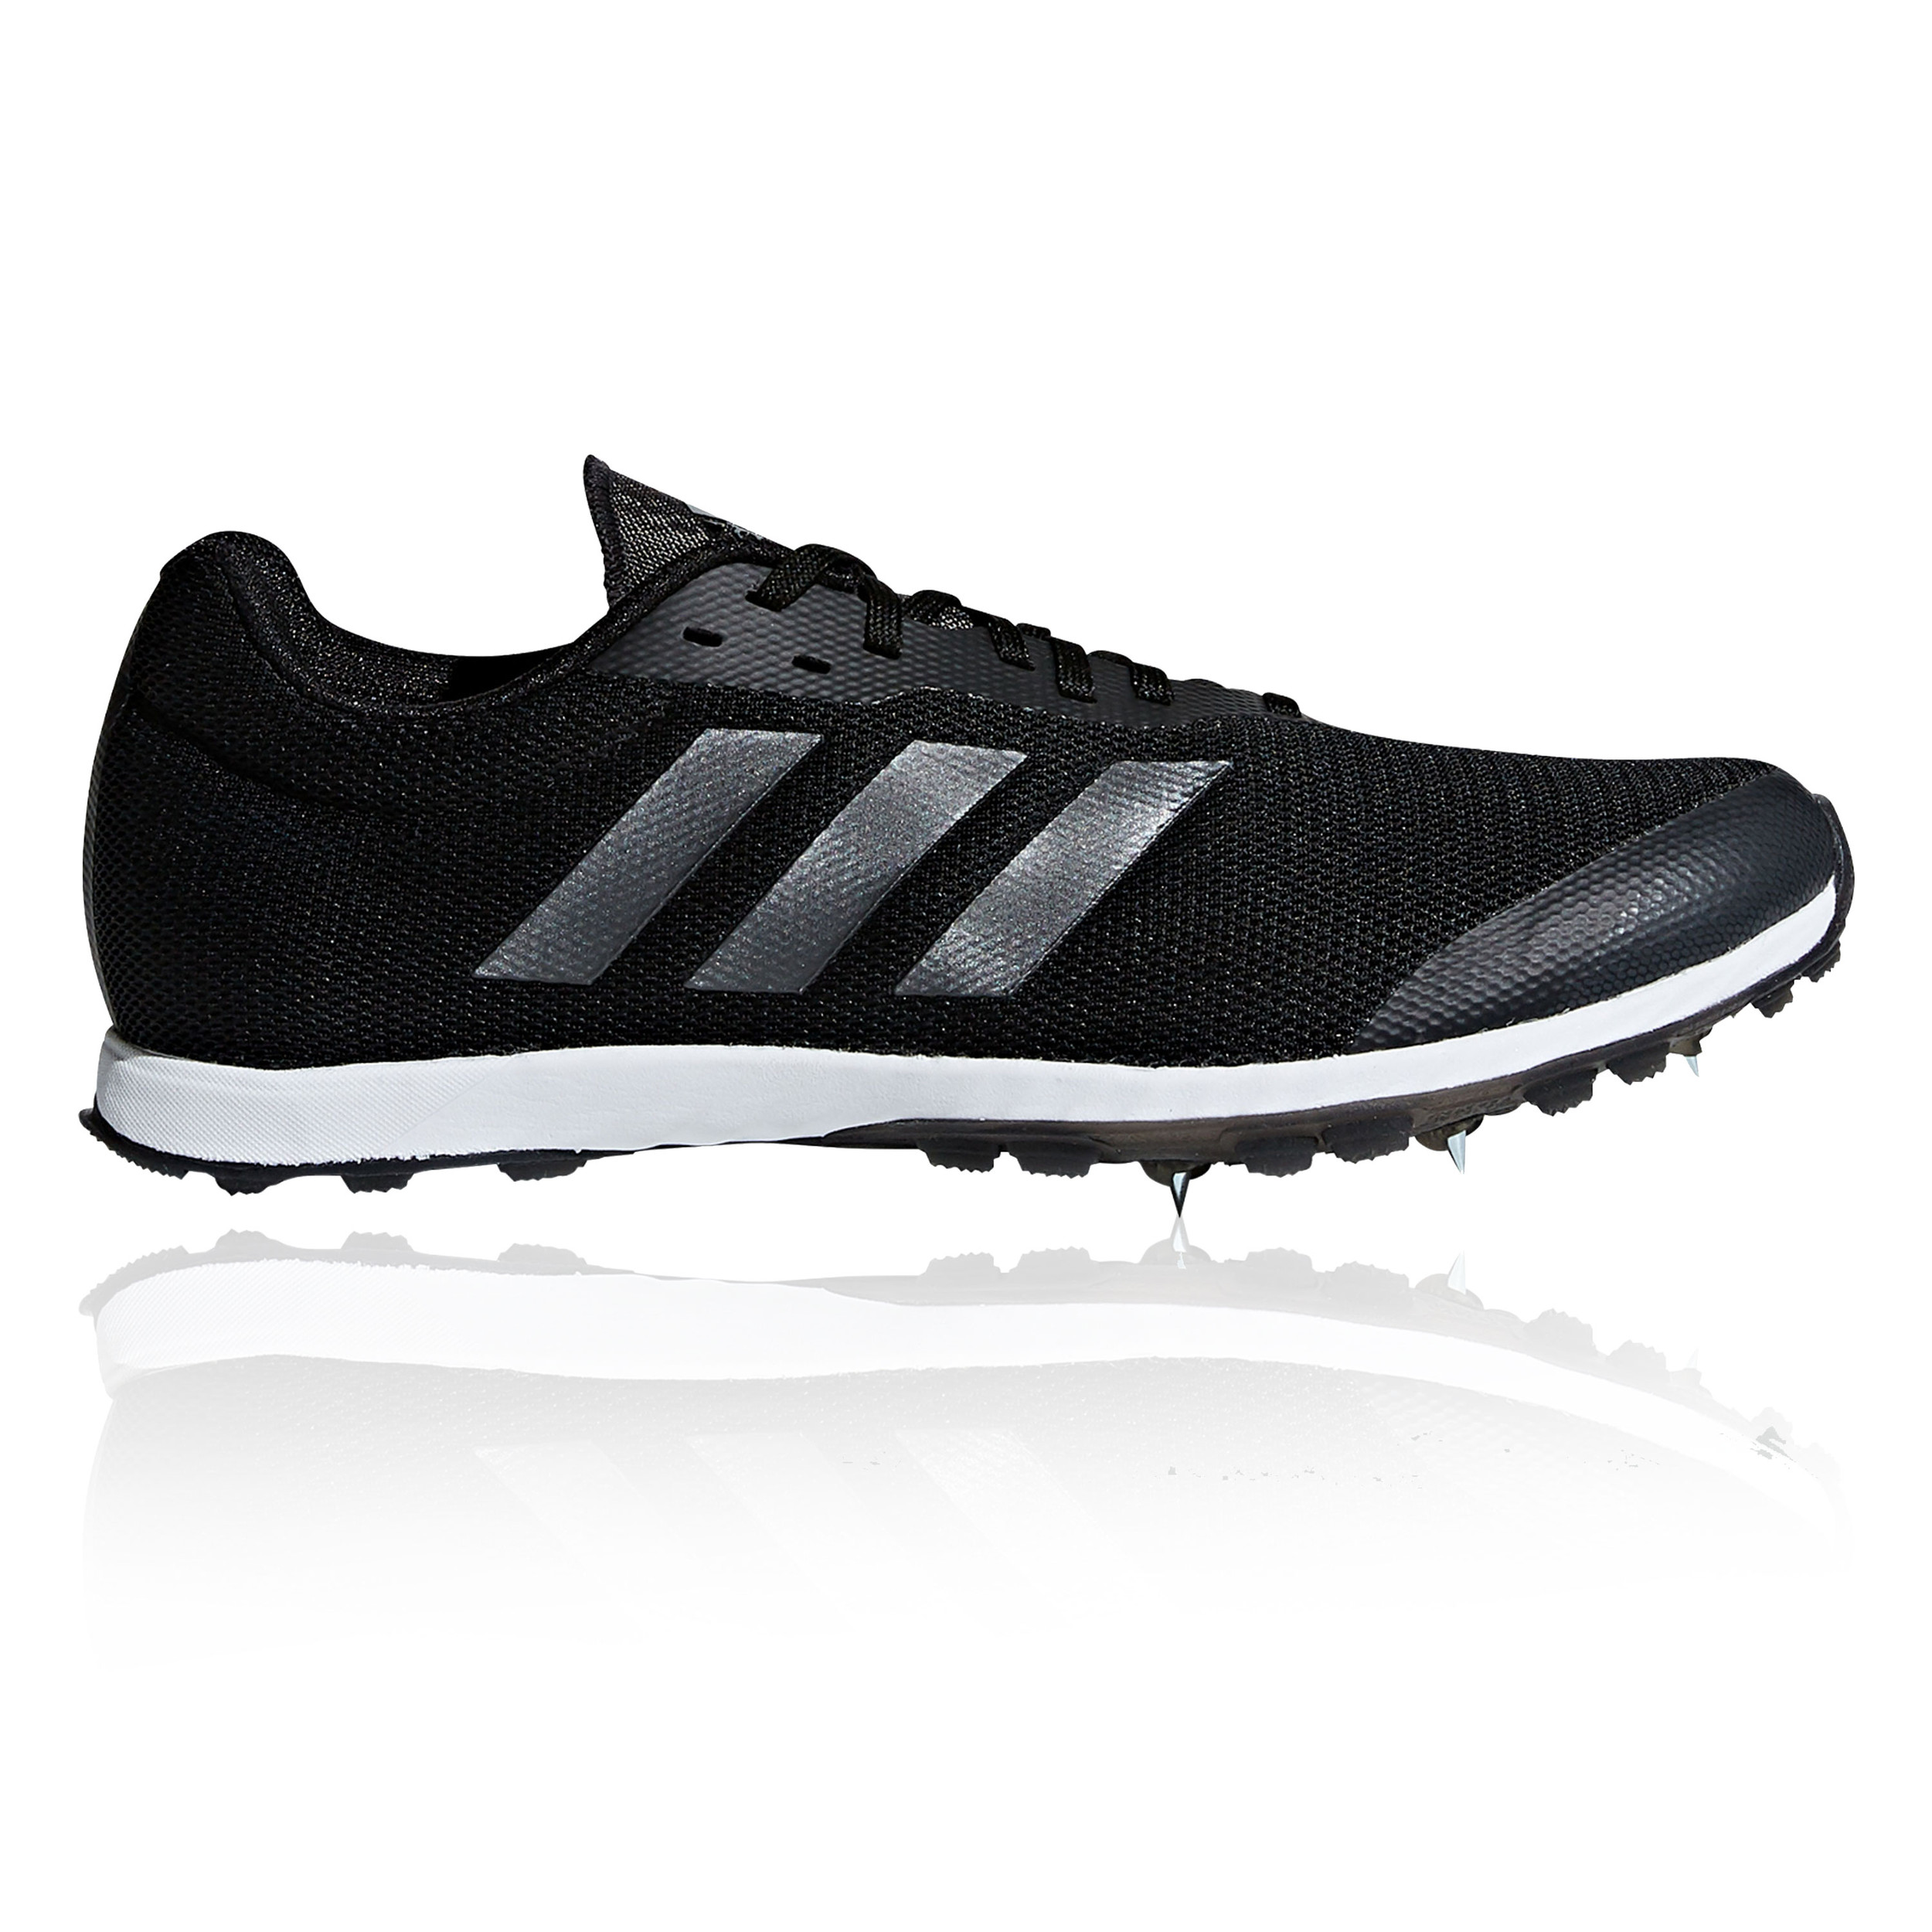 Details about adidas Womens XCS Shoes Black Sports Running Breathable Lightweight Trainers